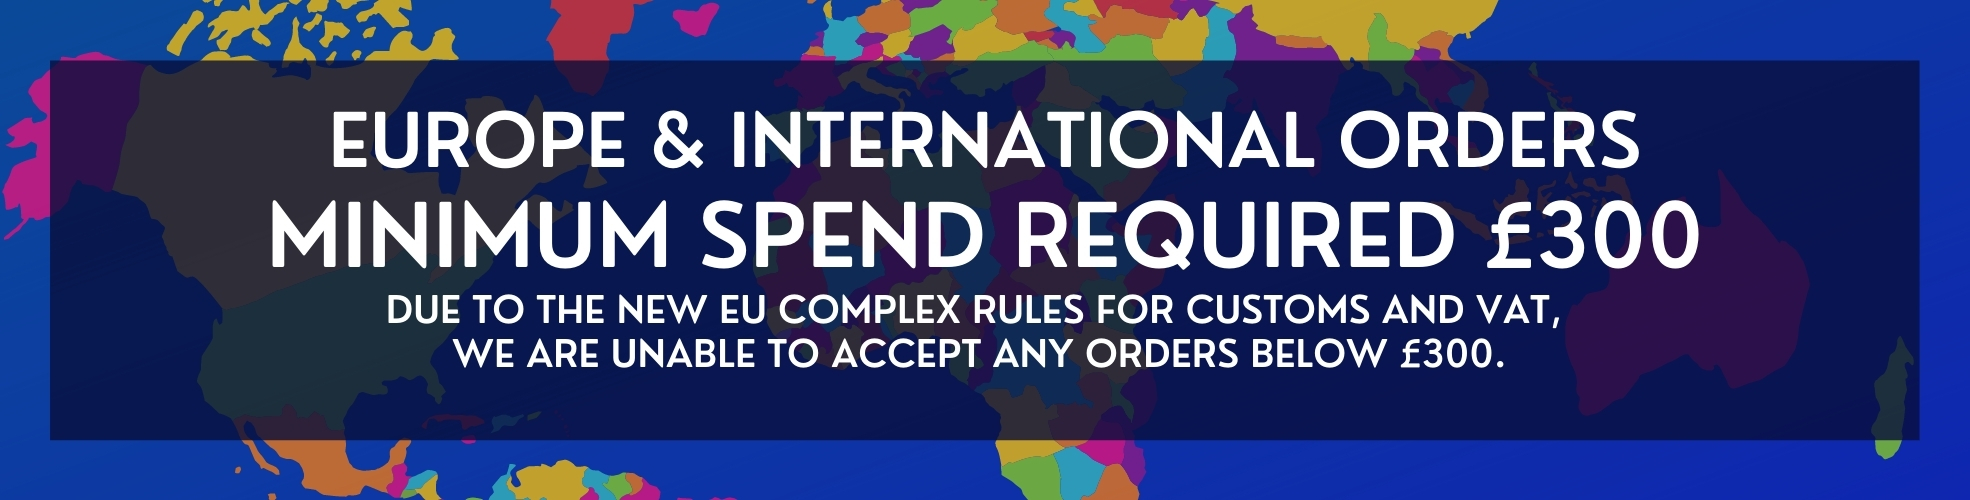 EUROPE & InternationAL ORDERS MINIMUM SPEND REQUIRED £300 Due to the new EU complex rules for customs and vat, we are unable to accept any orders below £300